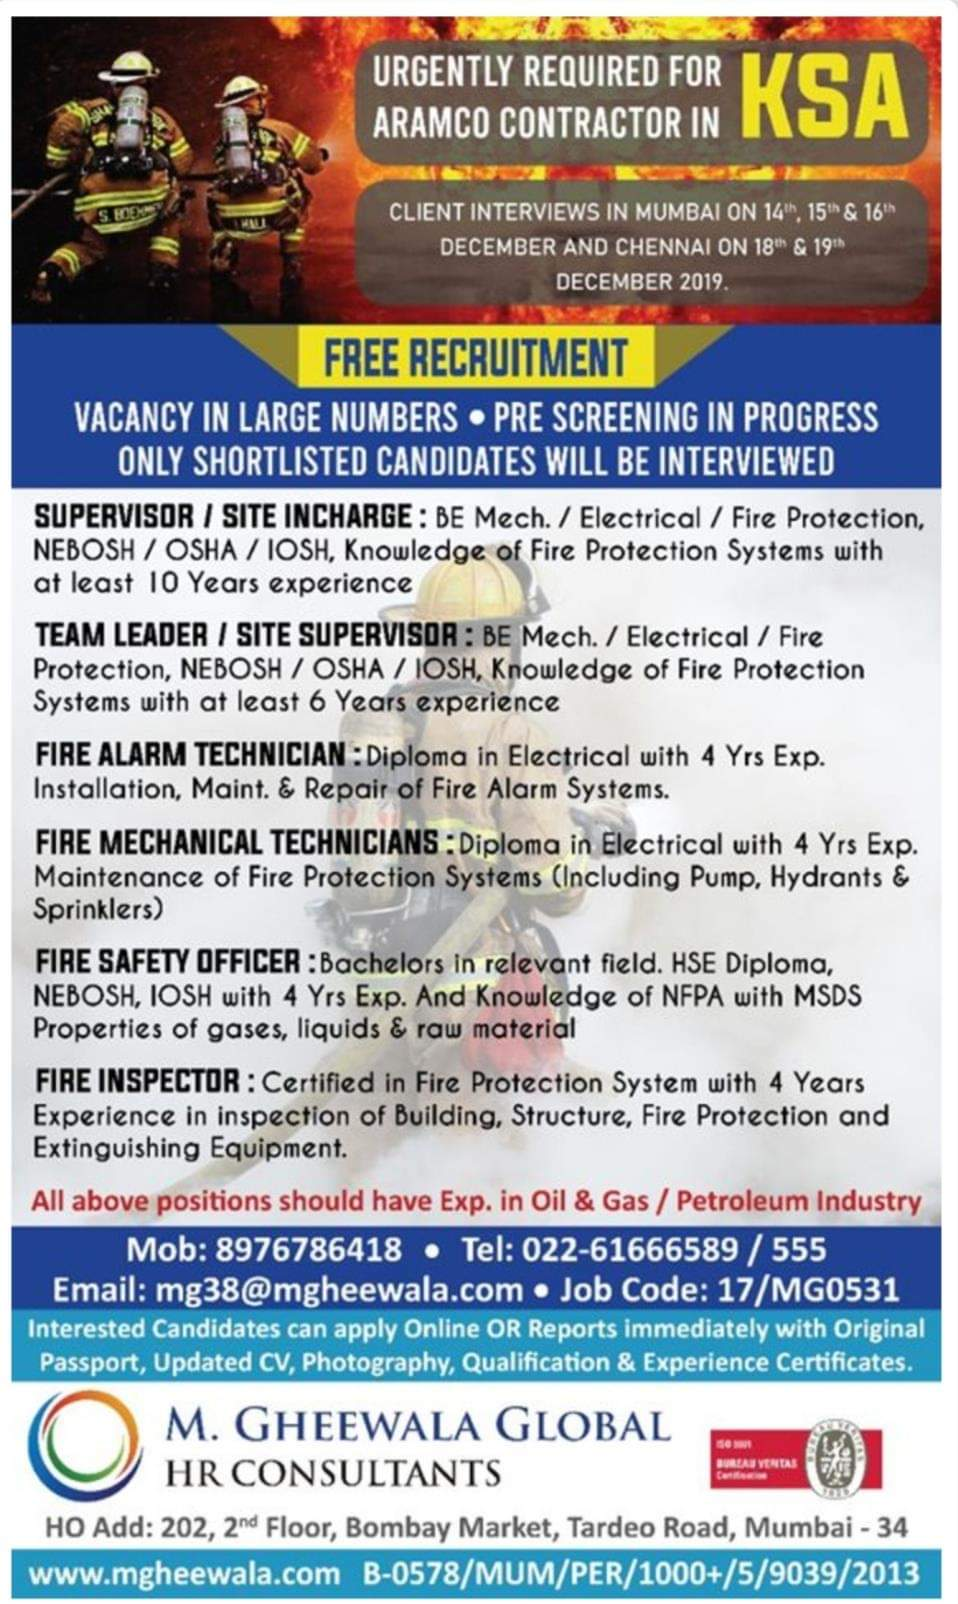 URGENTLY REQUIRED FOR ARAMCO CONTRACT IN KSA